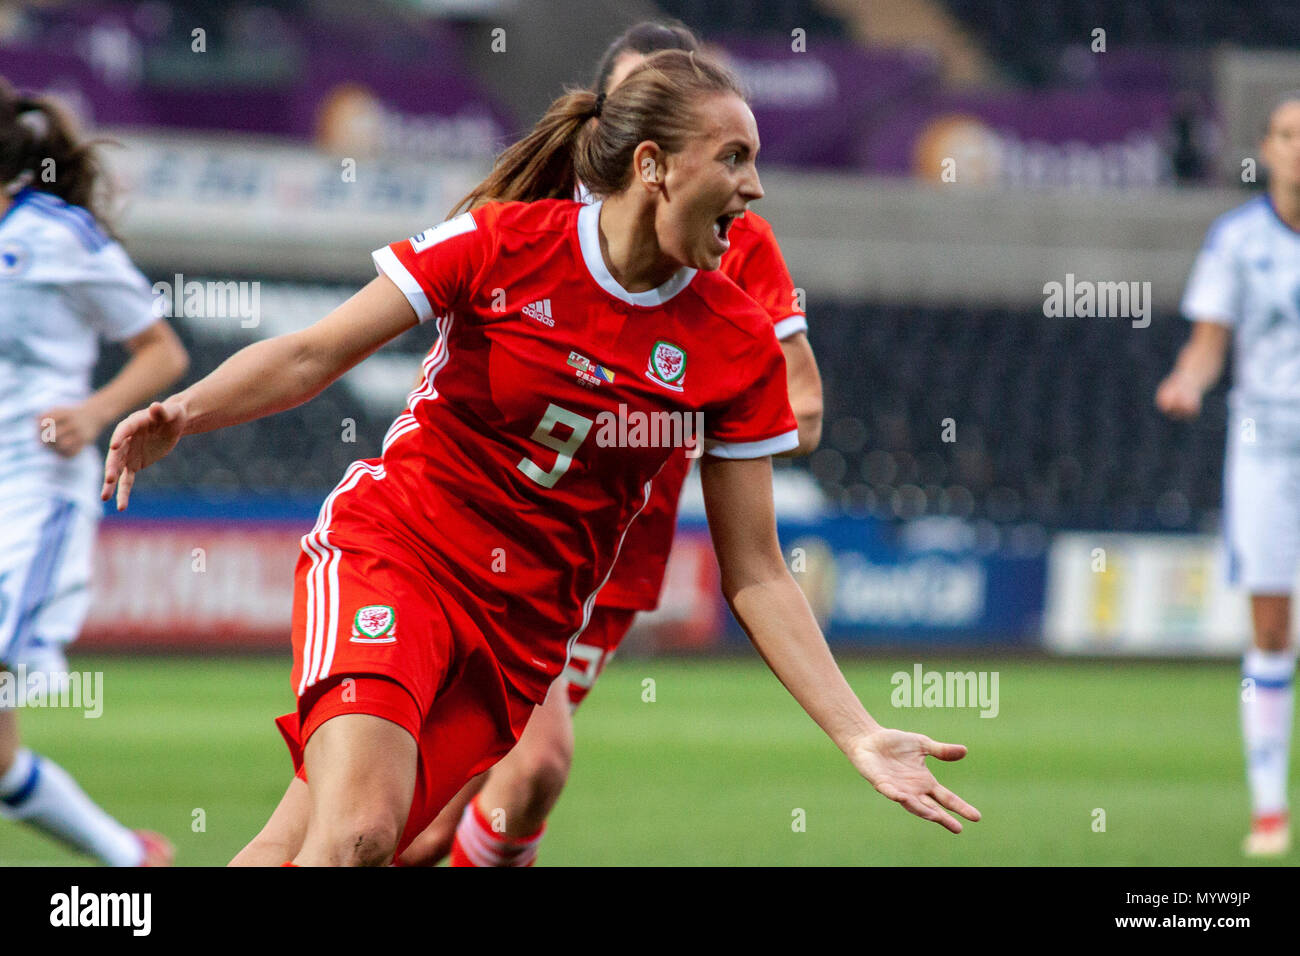 Swansea, Wales, UK. 7th June, 2018. Kayleigh Green scores against Bosnia-Herzegovina at the Liberty Stadium. Lewis Mitchell/Alamy Live News. - Stock Image